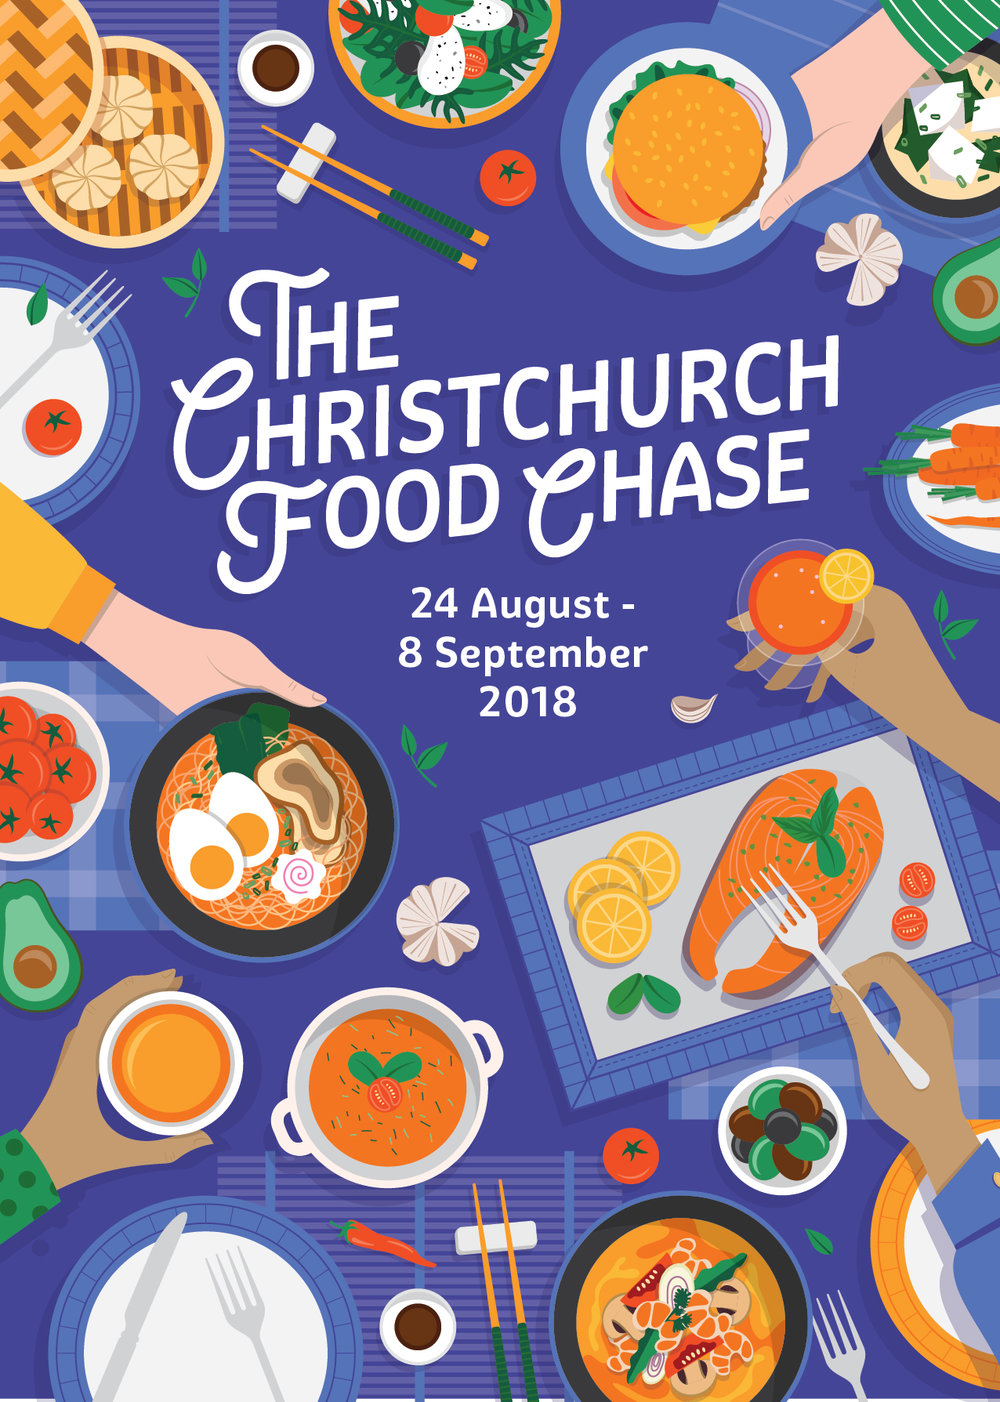 2.Join the Christchurch Food Chase to find our city's favourite dish!